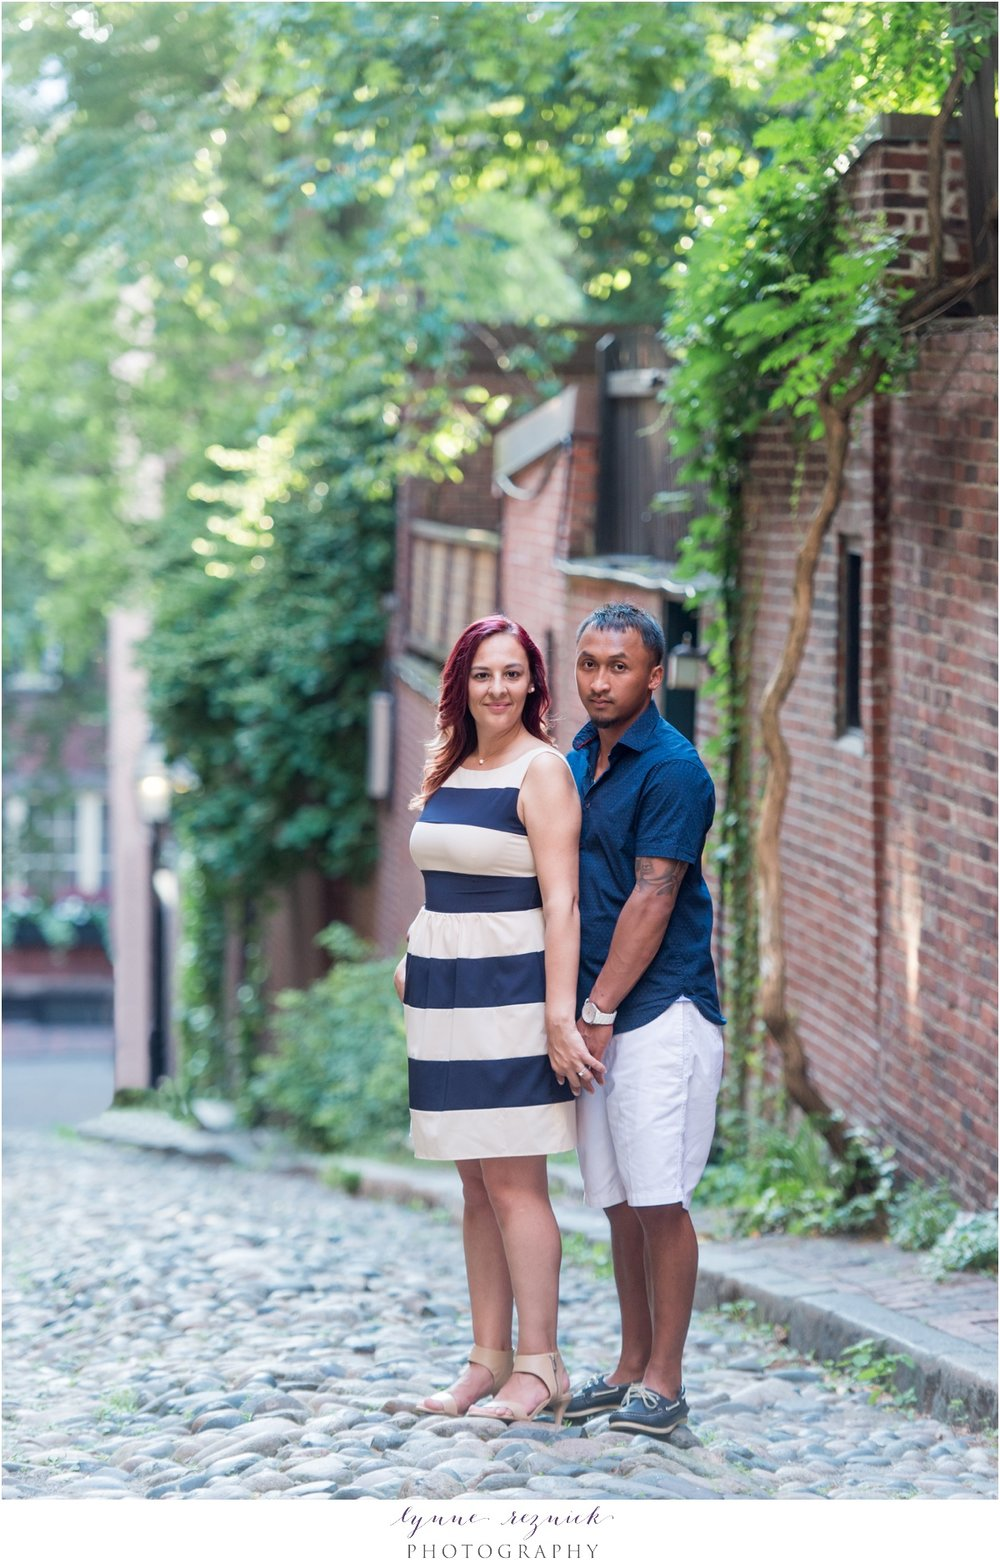 Acorn Street portraits for engaged couple